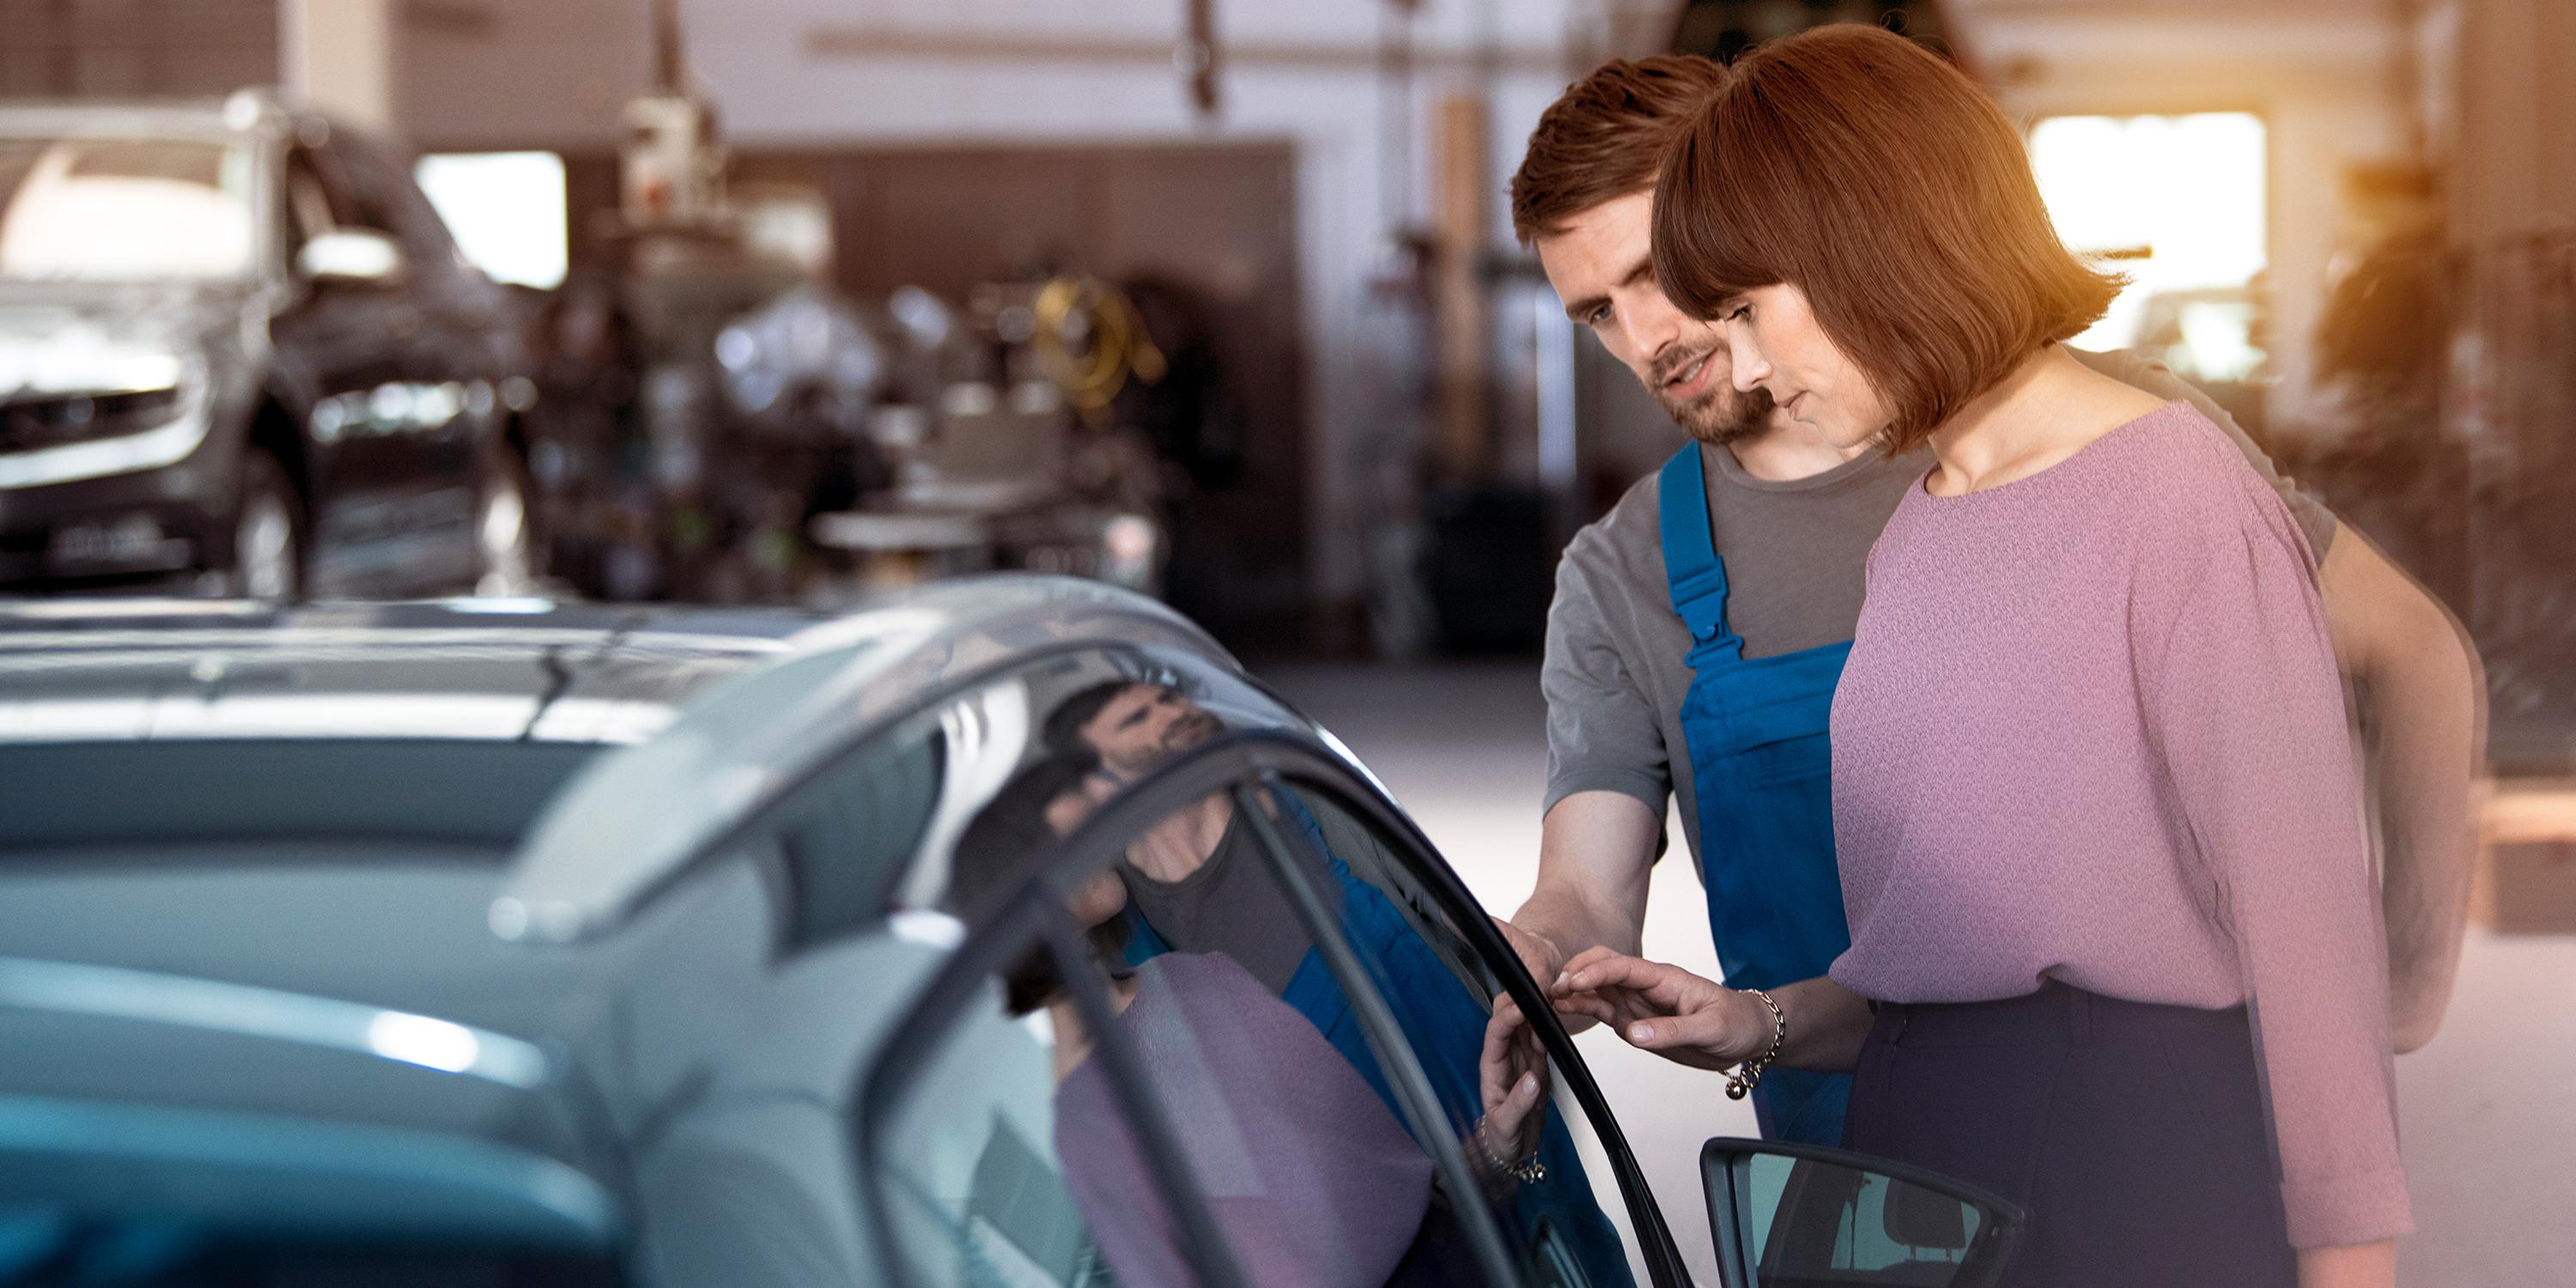 woman mechanic checking car